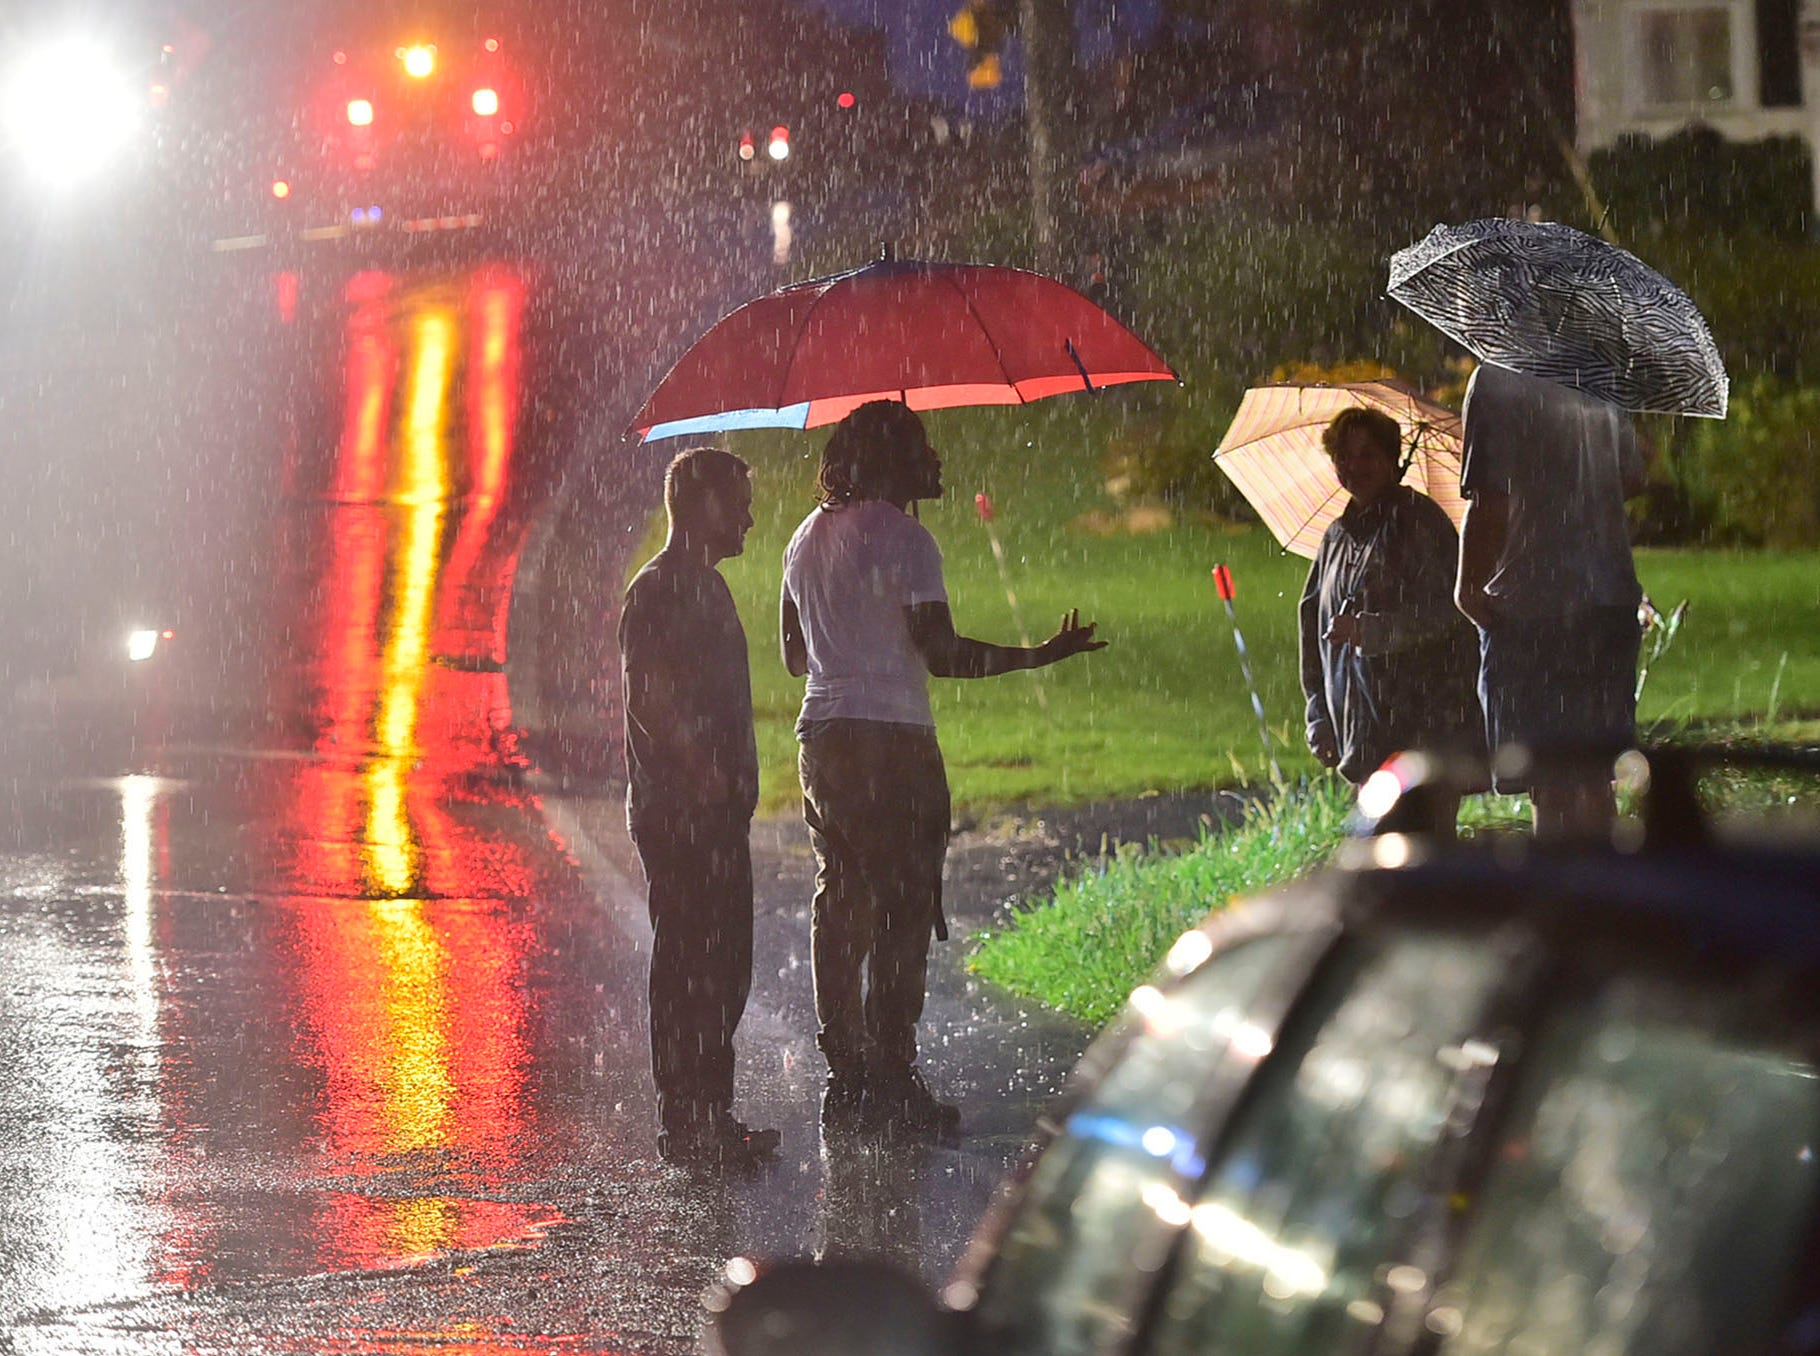 Rain continues as motorists wait for wreckers to tow their stalled vehicles at North Franklin Street after a flash flood struck the Chambersburg area on Wednesday, August 1, 2018.